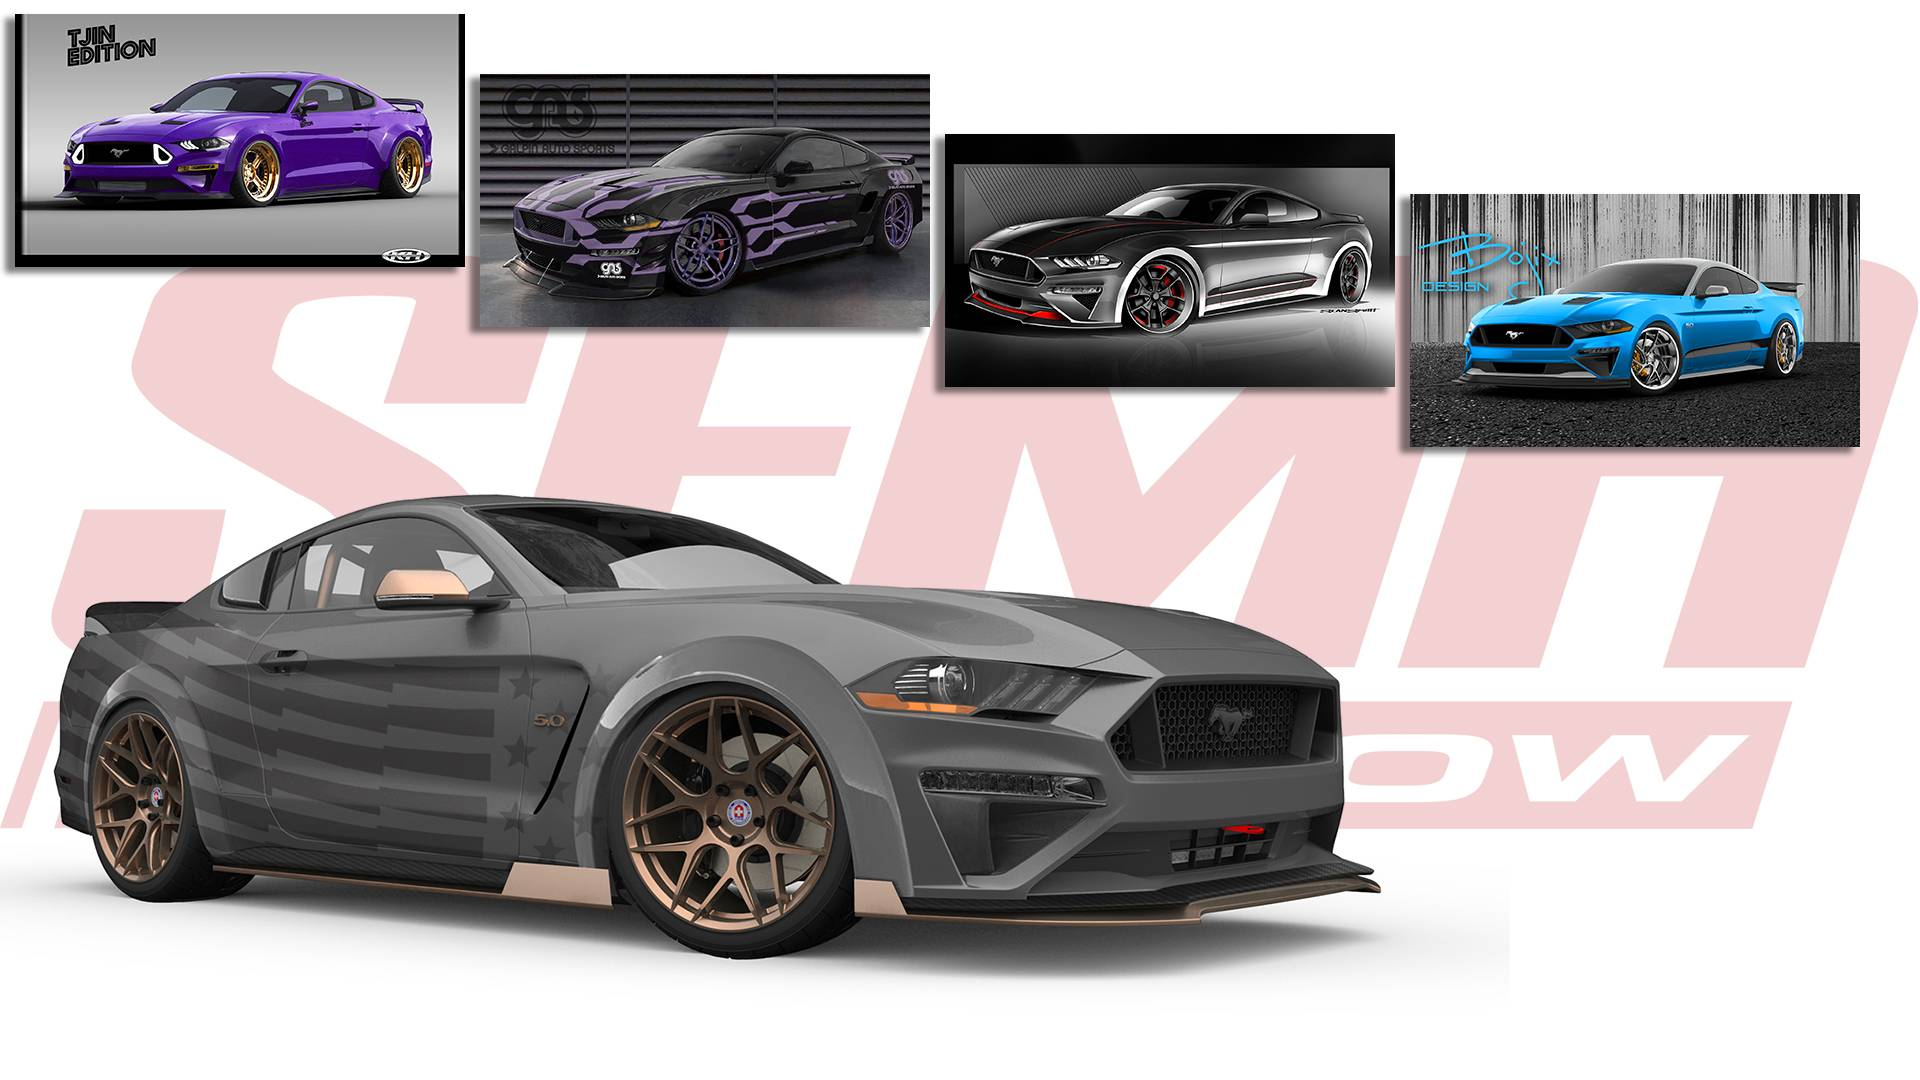 2018 Sema Show: What To Expect